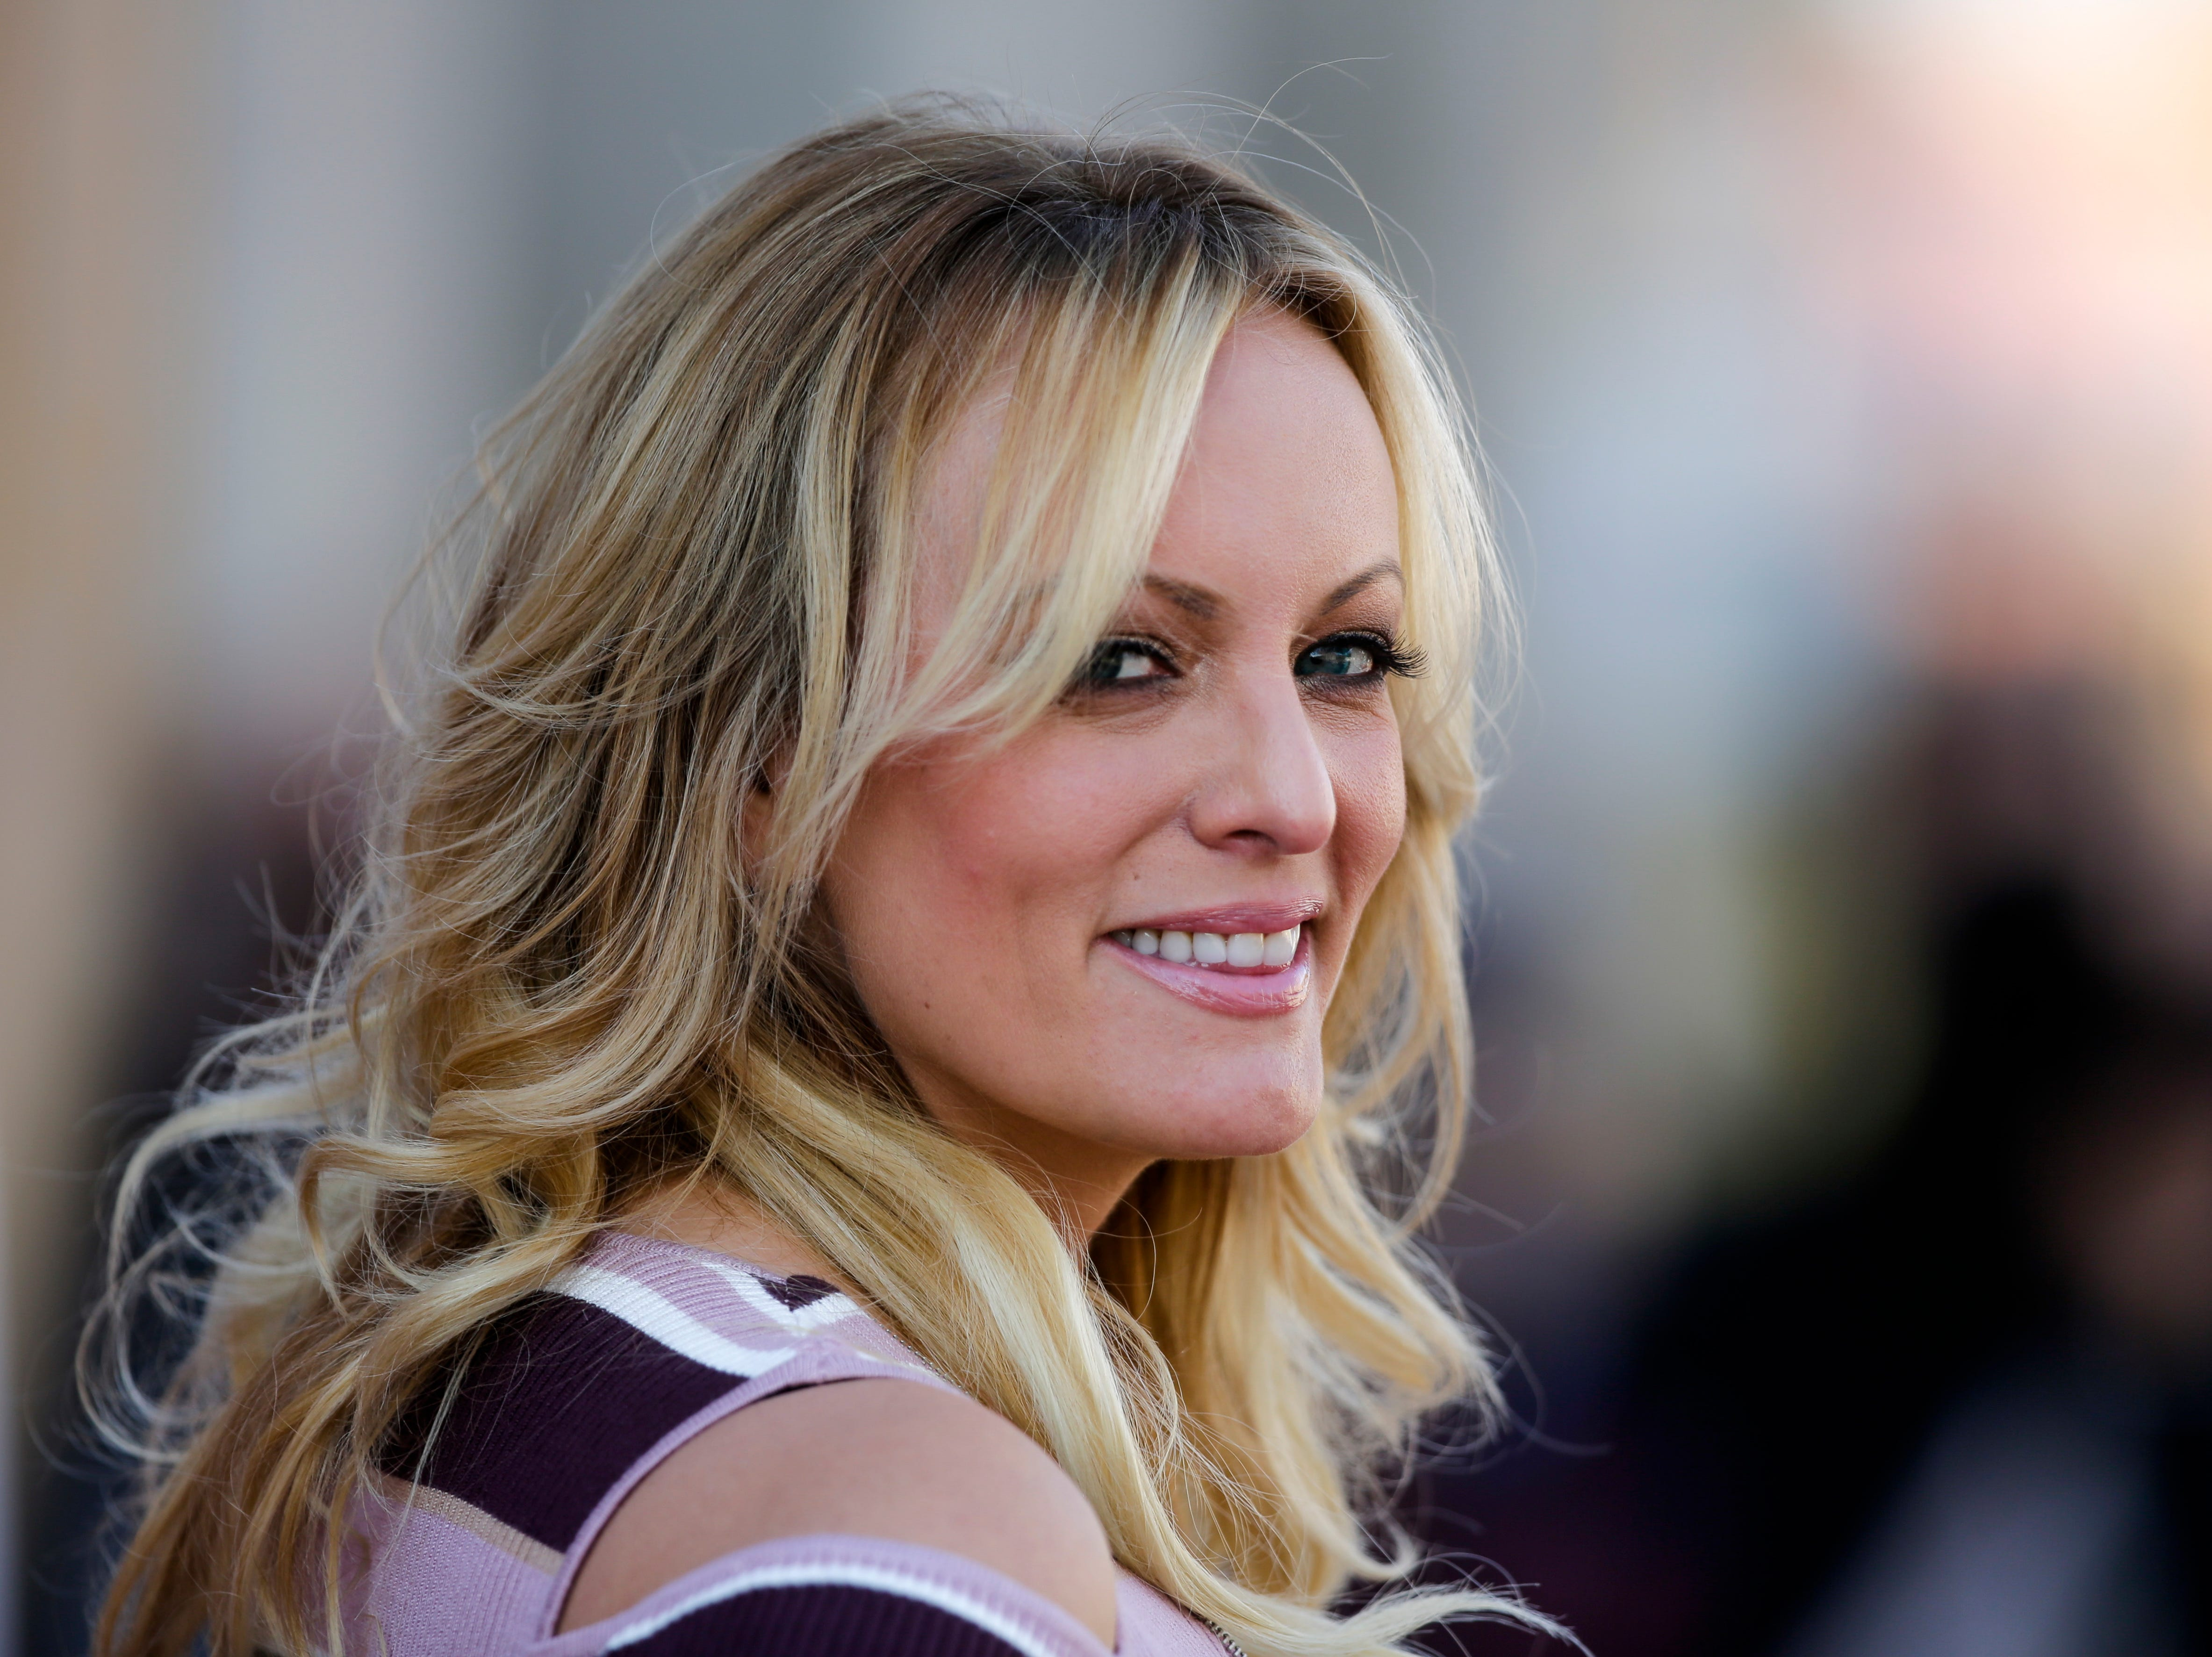 What you missed at Stormy Daniels' election night performance in Greenville